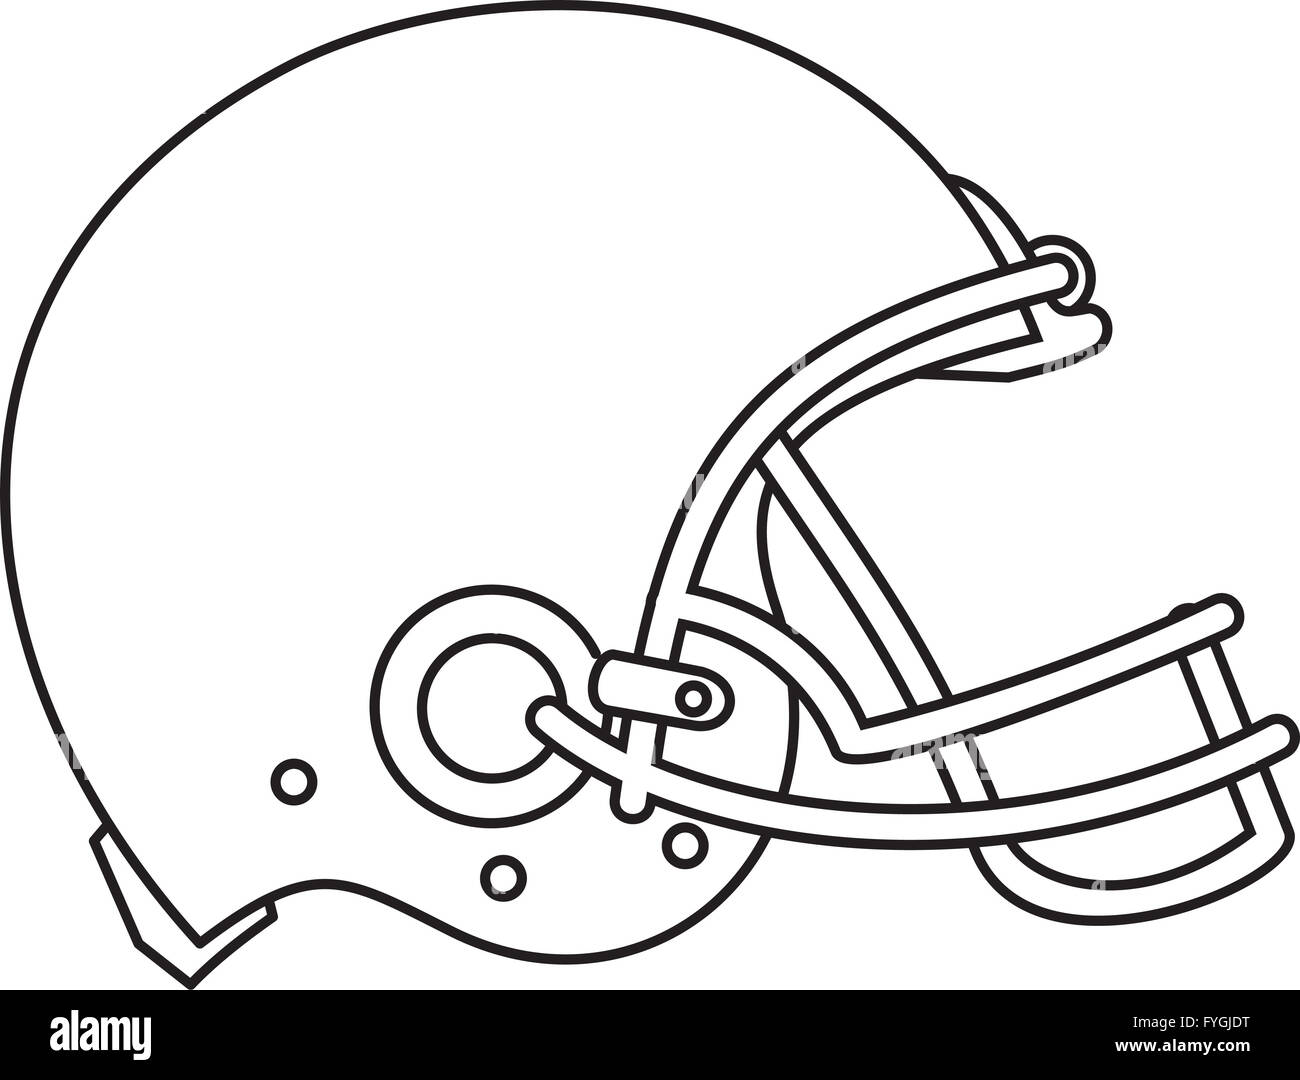 American Football Helmet Line Drawing Stock Photo 103013284 Alamy